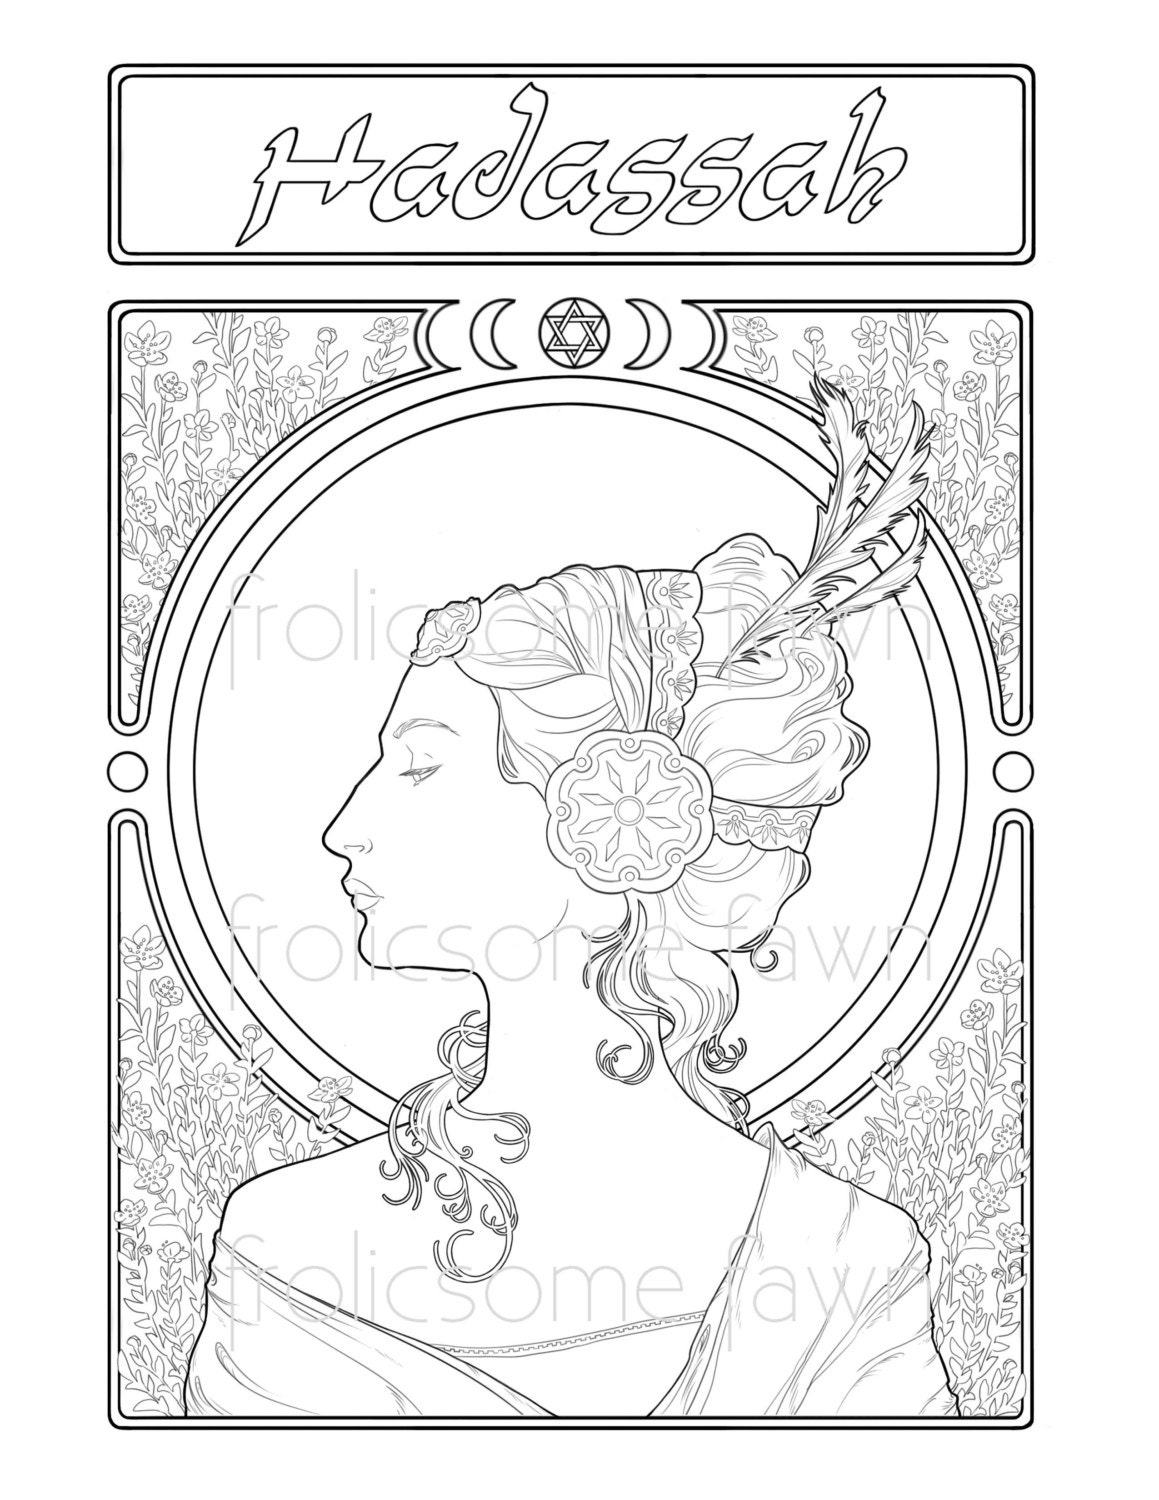 Printable coloring pages of queen esther - Queen Esther Adult Coloring Page Bible Coloring Page Alfons Mucha Inspired